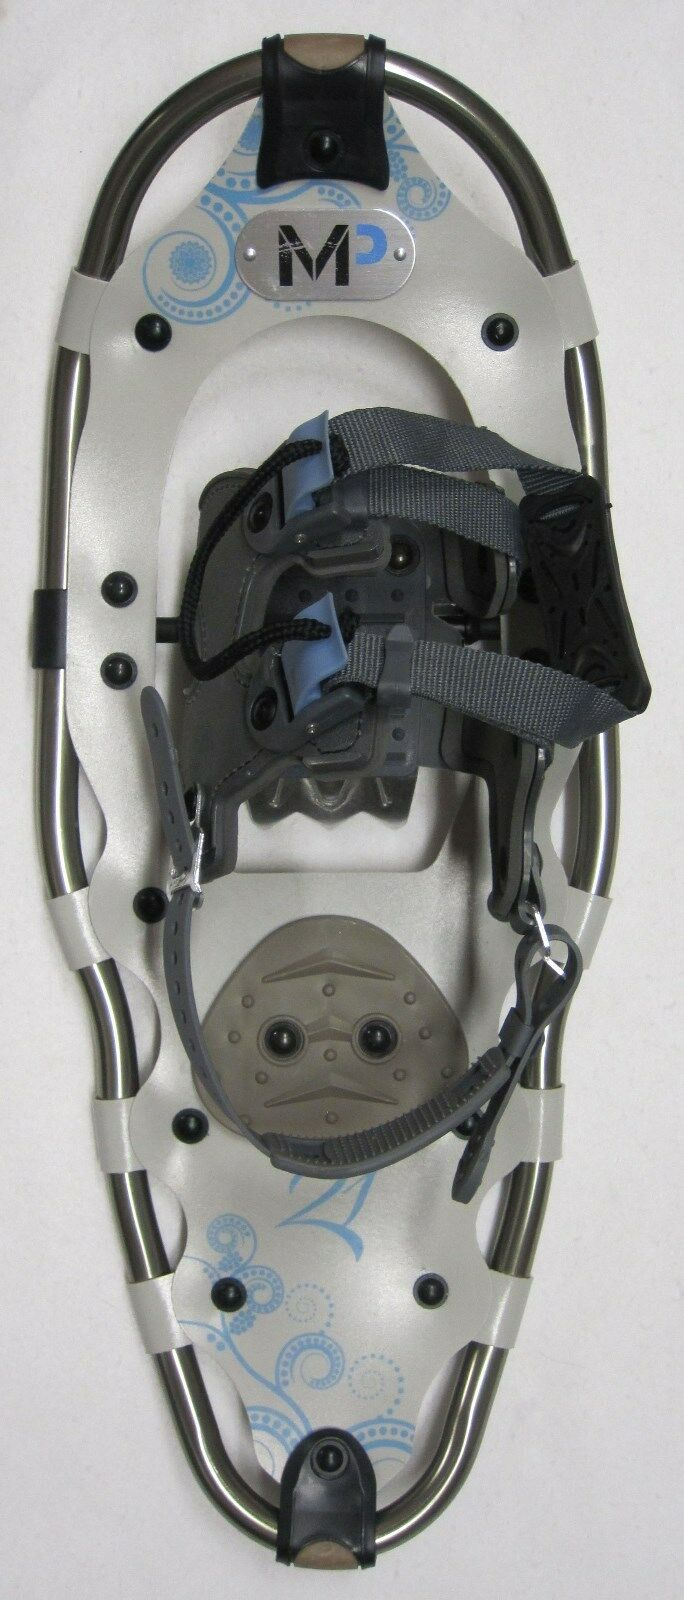 NEW YUKON CHARLIES MP 821 8x21  SNOWSHOES -Best Binding Technology -FREE GAITERS